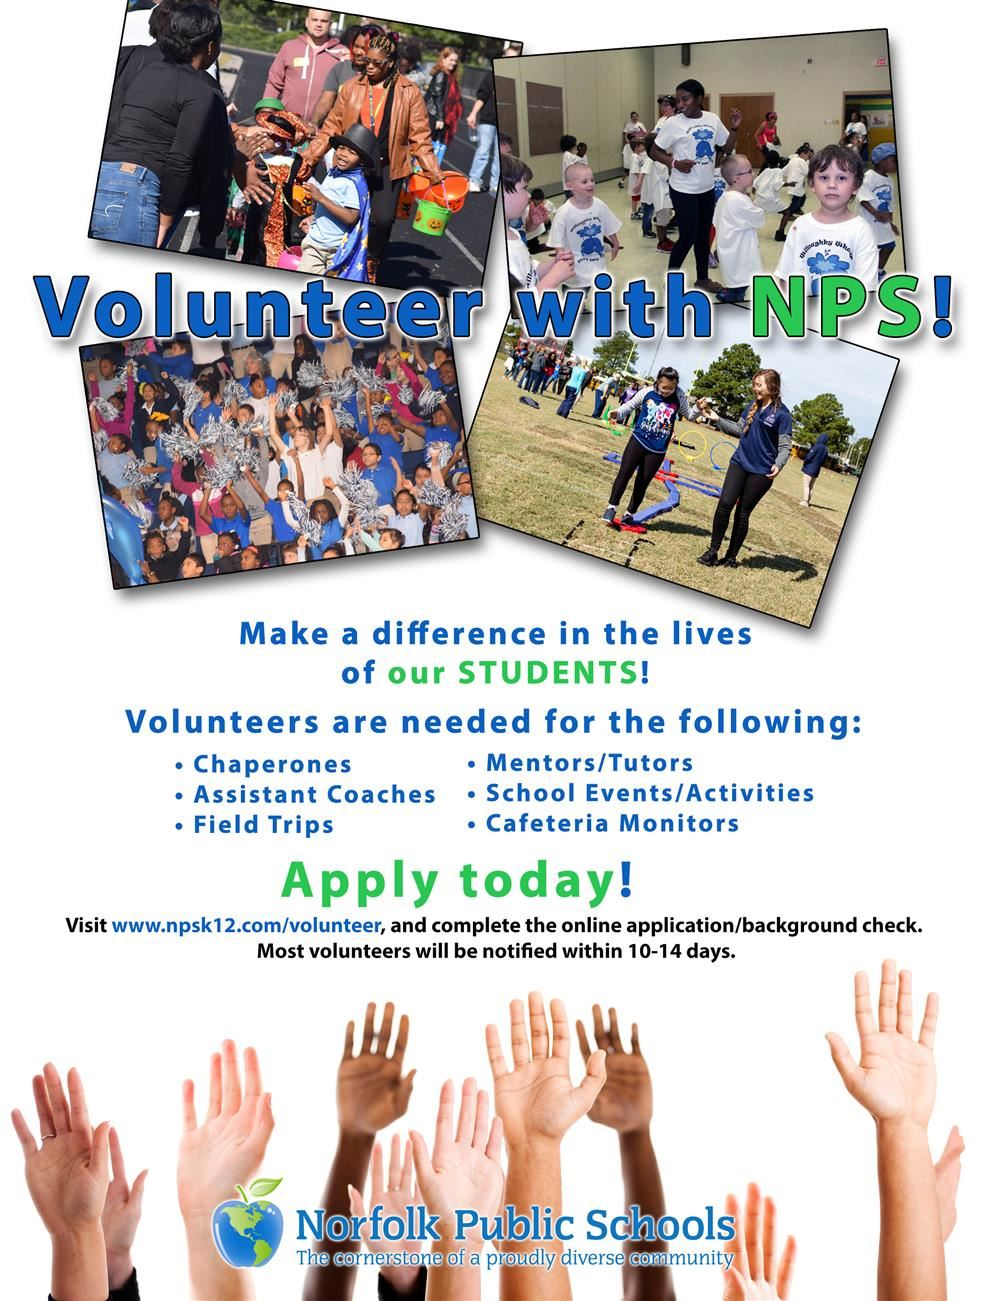 Volunteer With Norfolk Public Schools